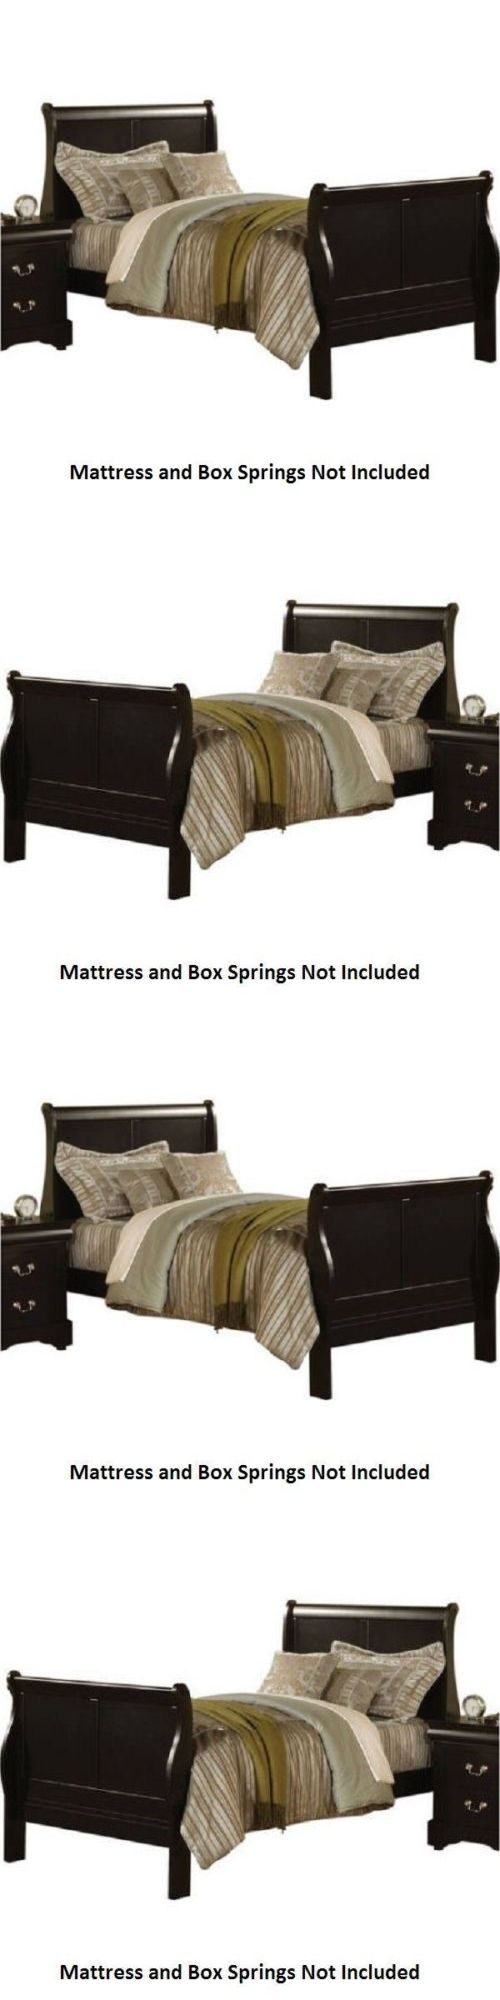 Beds and Bed Frames 175758: Black Full Size Bed Frame With Wood Headboard Sleigh Modern Bedroom Furniture -> BUY IT NOW ONLY: $199.98 on eBay!